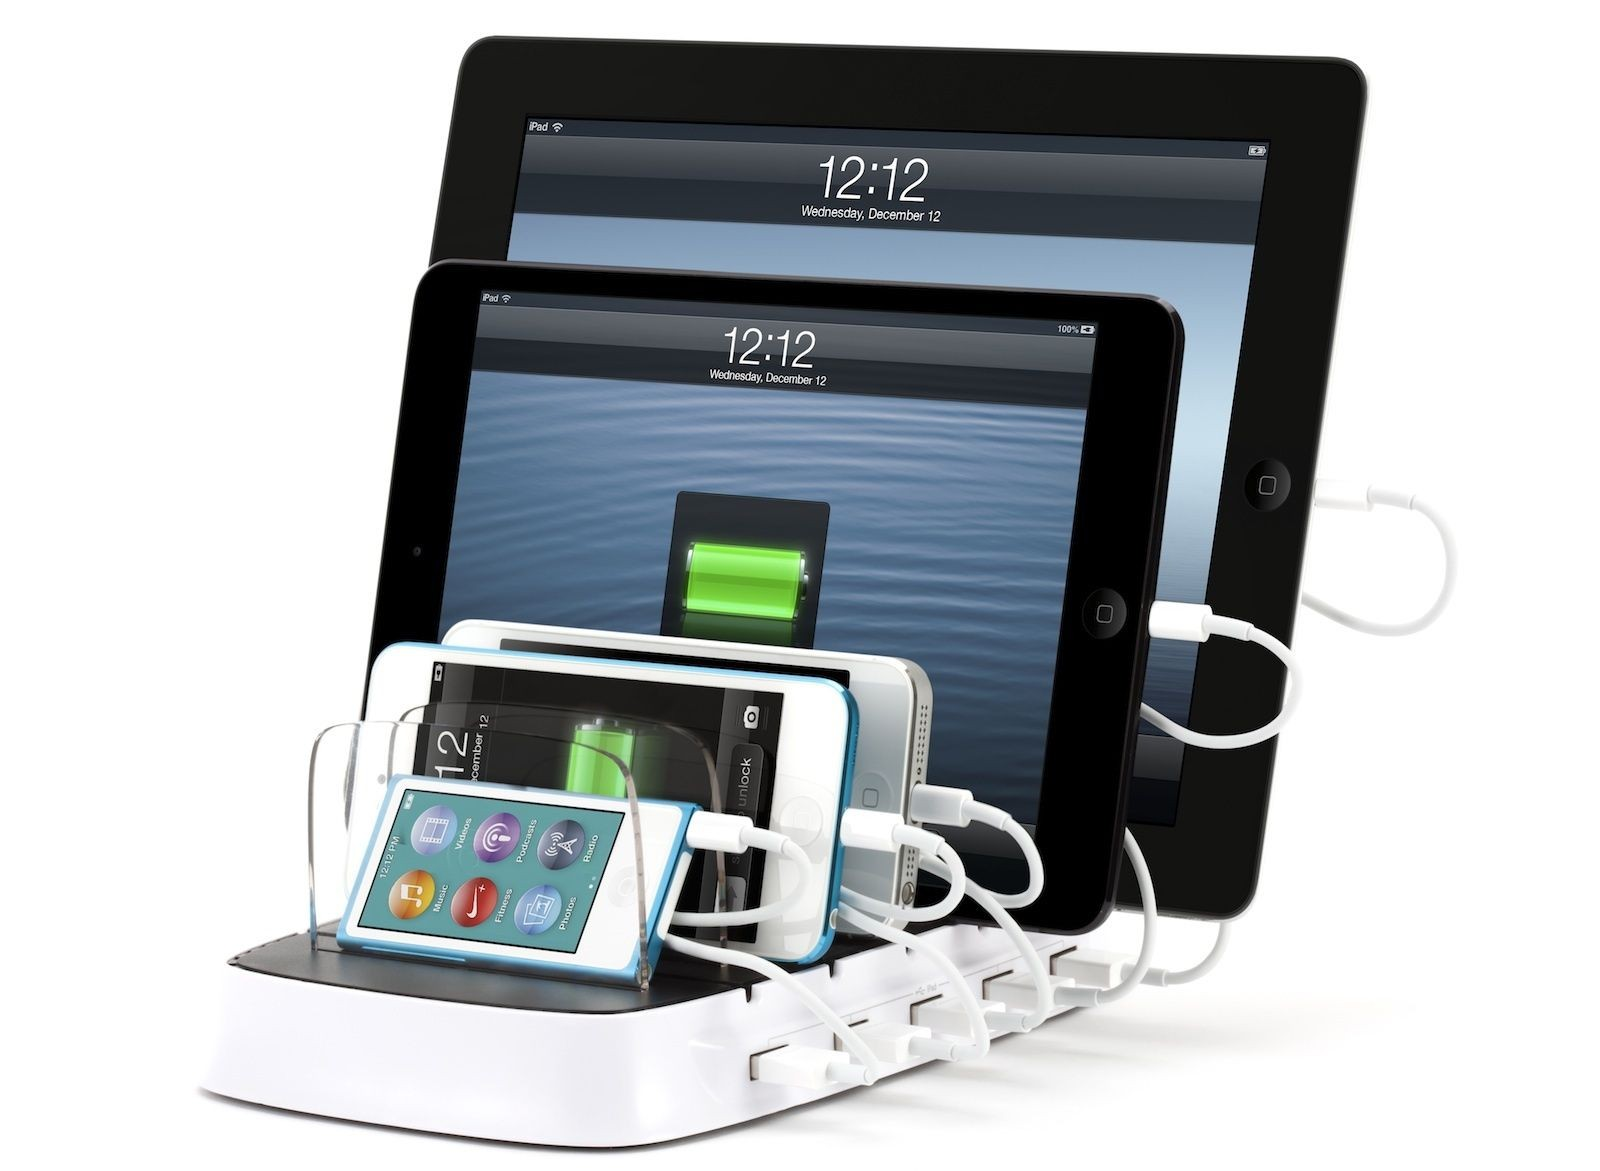 Griffin PowerDock 5 Charging Station for iPad, iPhone, iPod, GR-PWDOCK-5